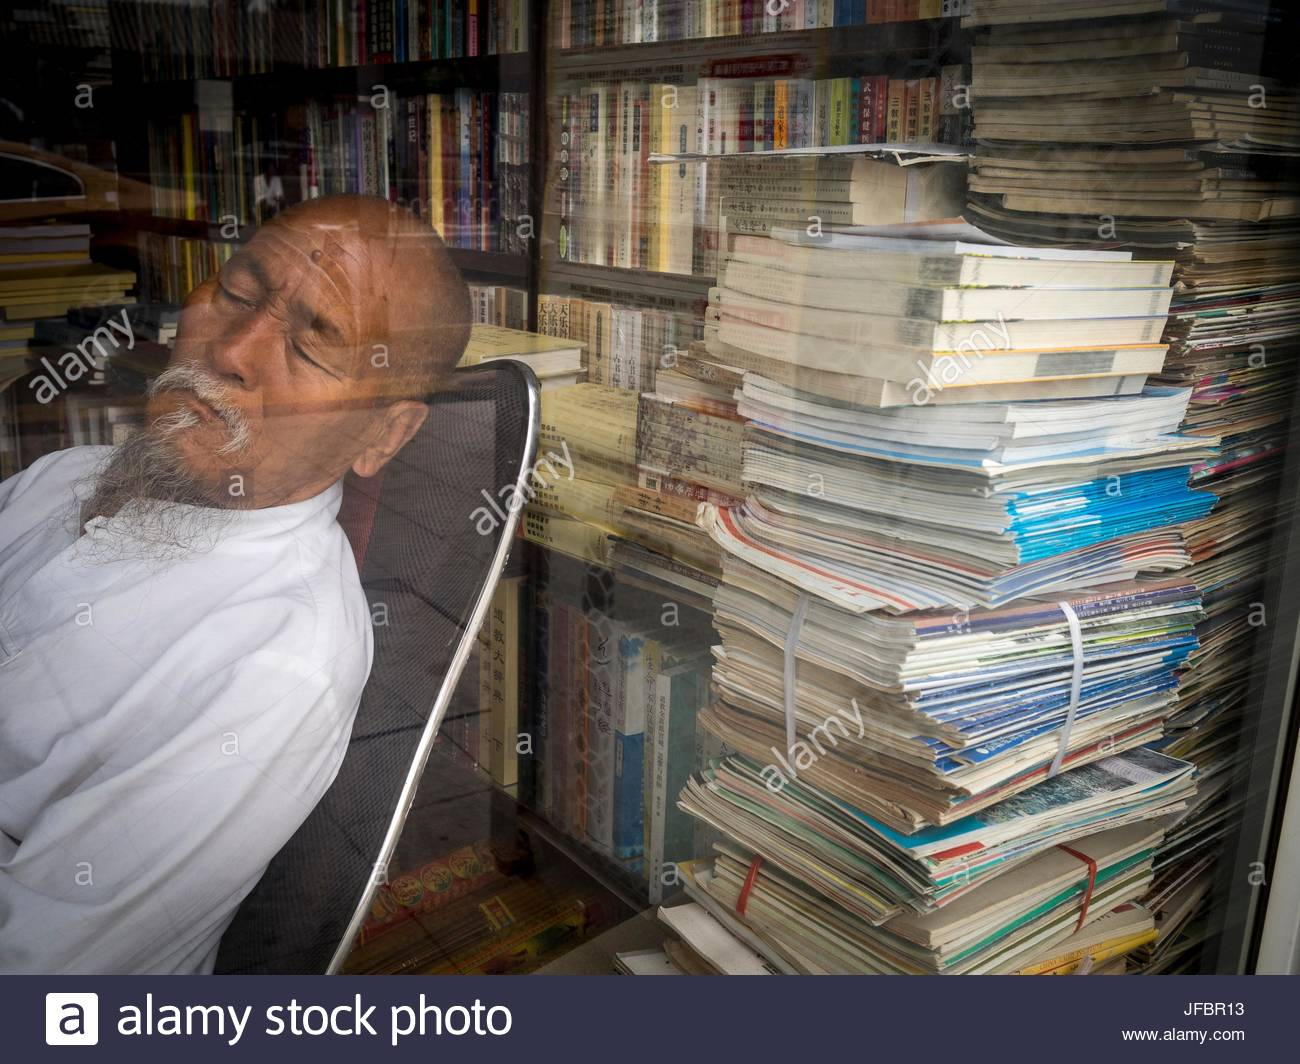 A view, through a window, of a sleeping bookseller. - Stock Image